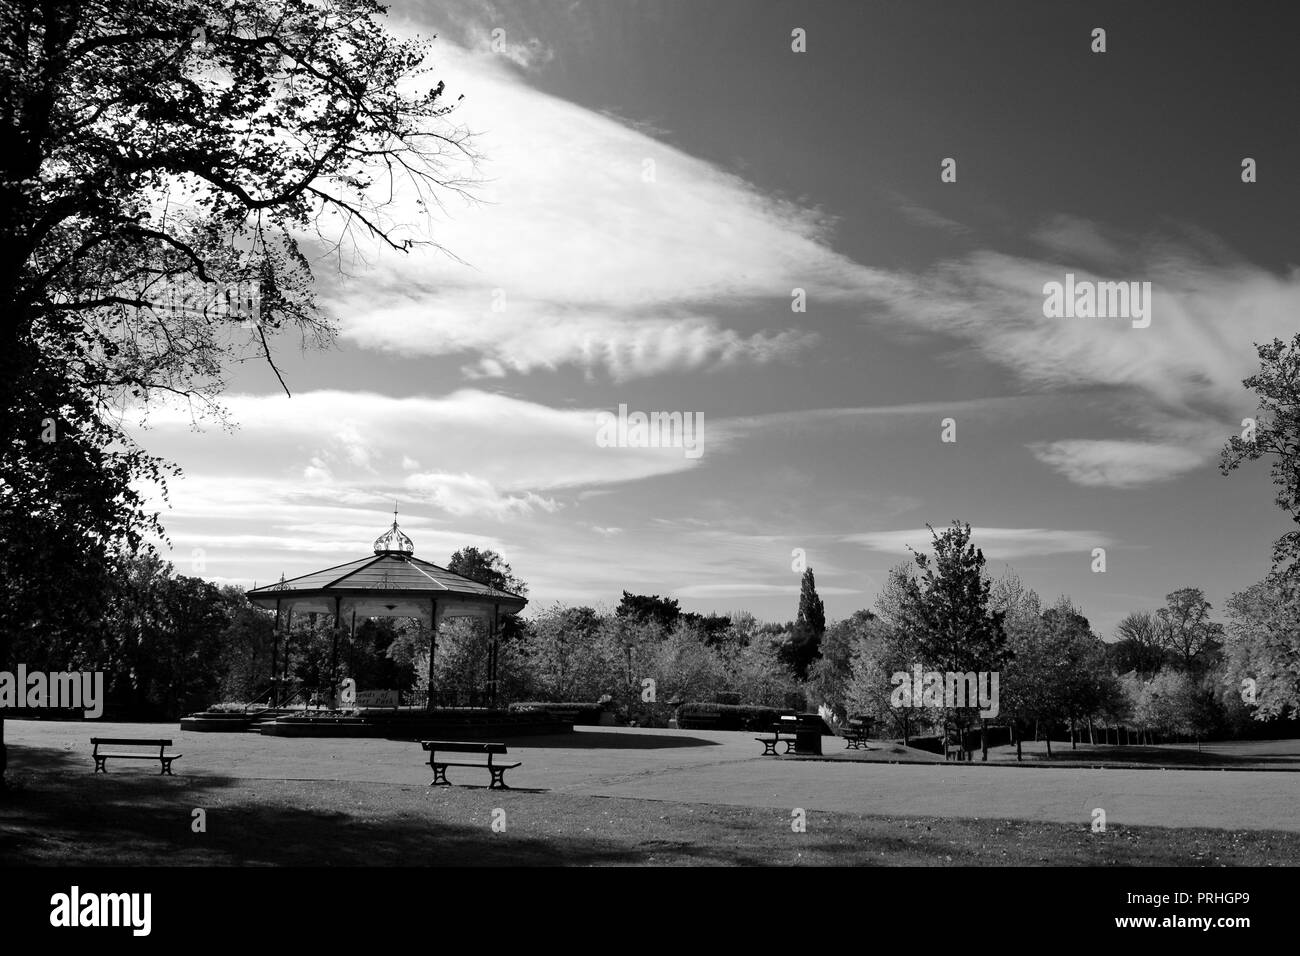 Black and White moody images of the traditional Bandstand at Ropner Park, Stockton-on-Tees on a sunny Autumn afternoon. - Stock Image